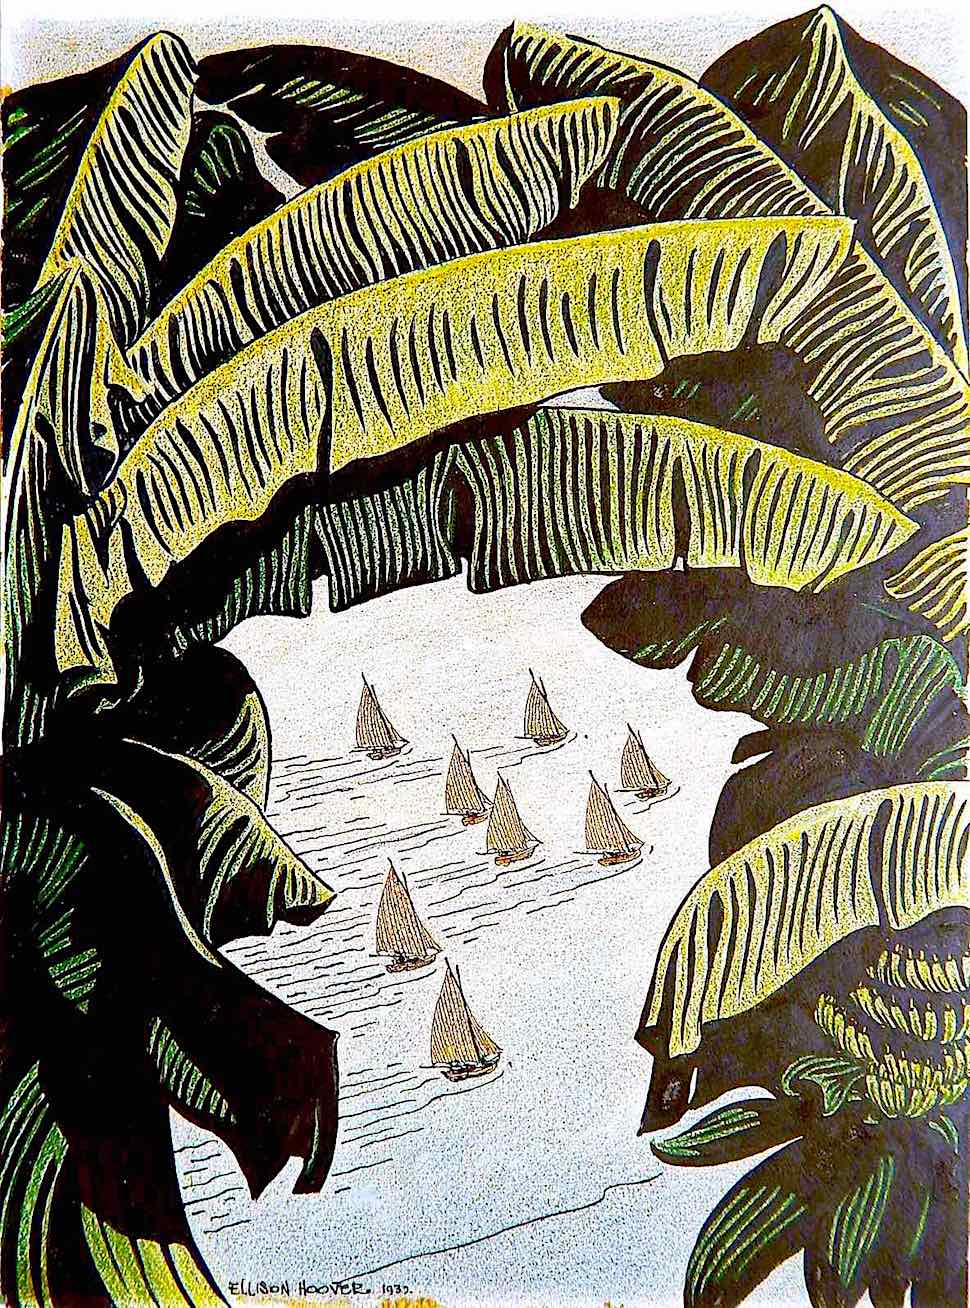 an Ellison Hoover illustration of a sailboat race amid palm trees